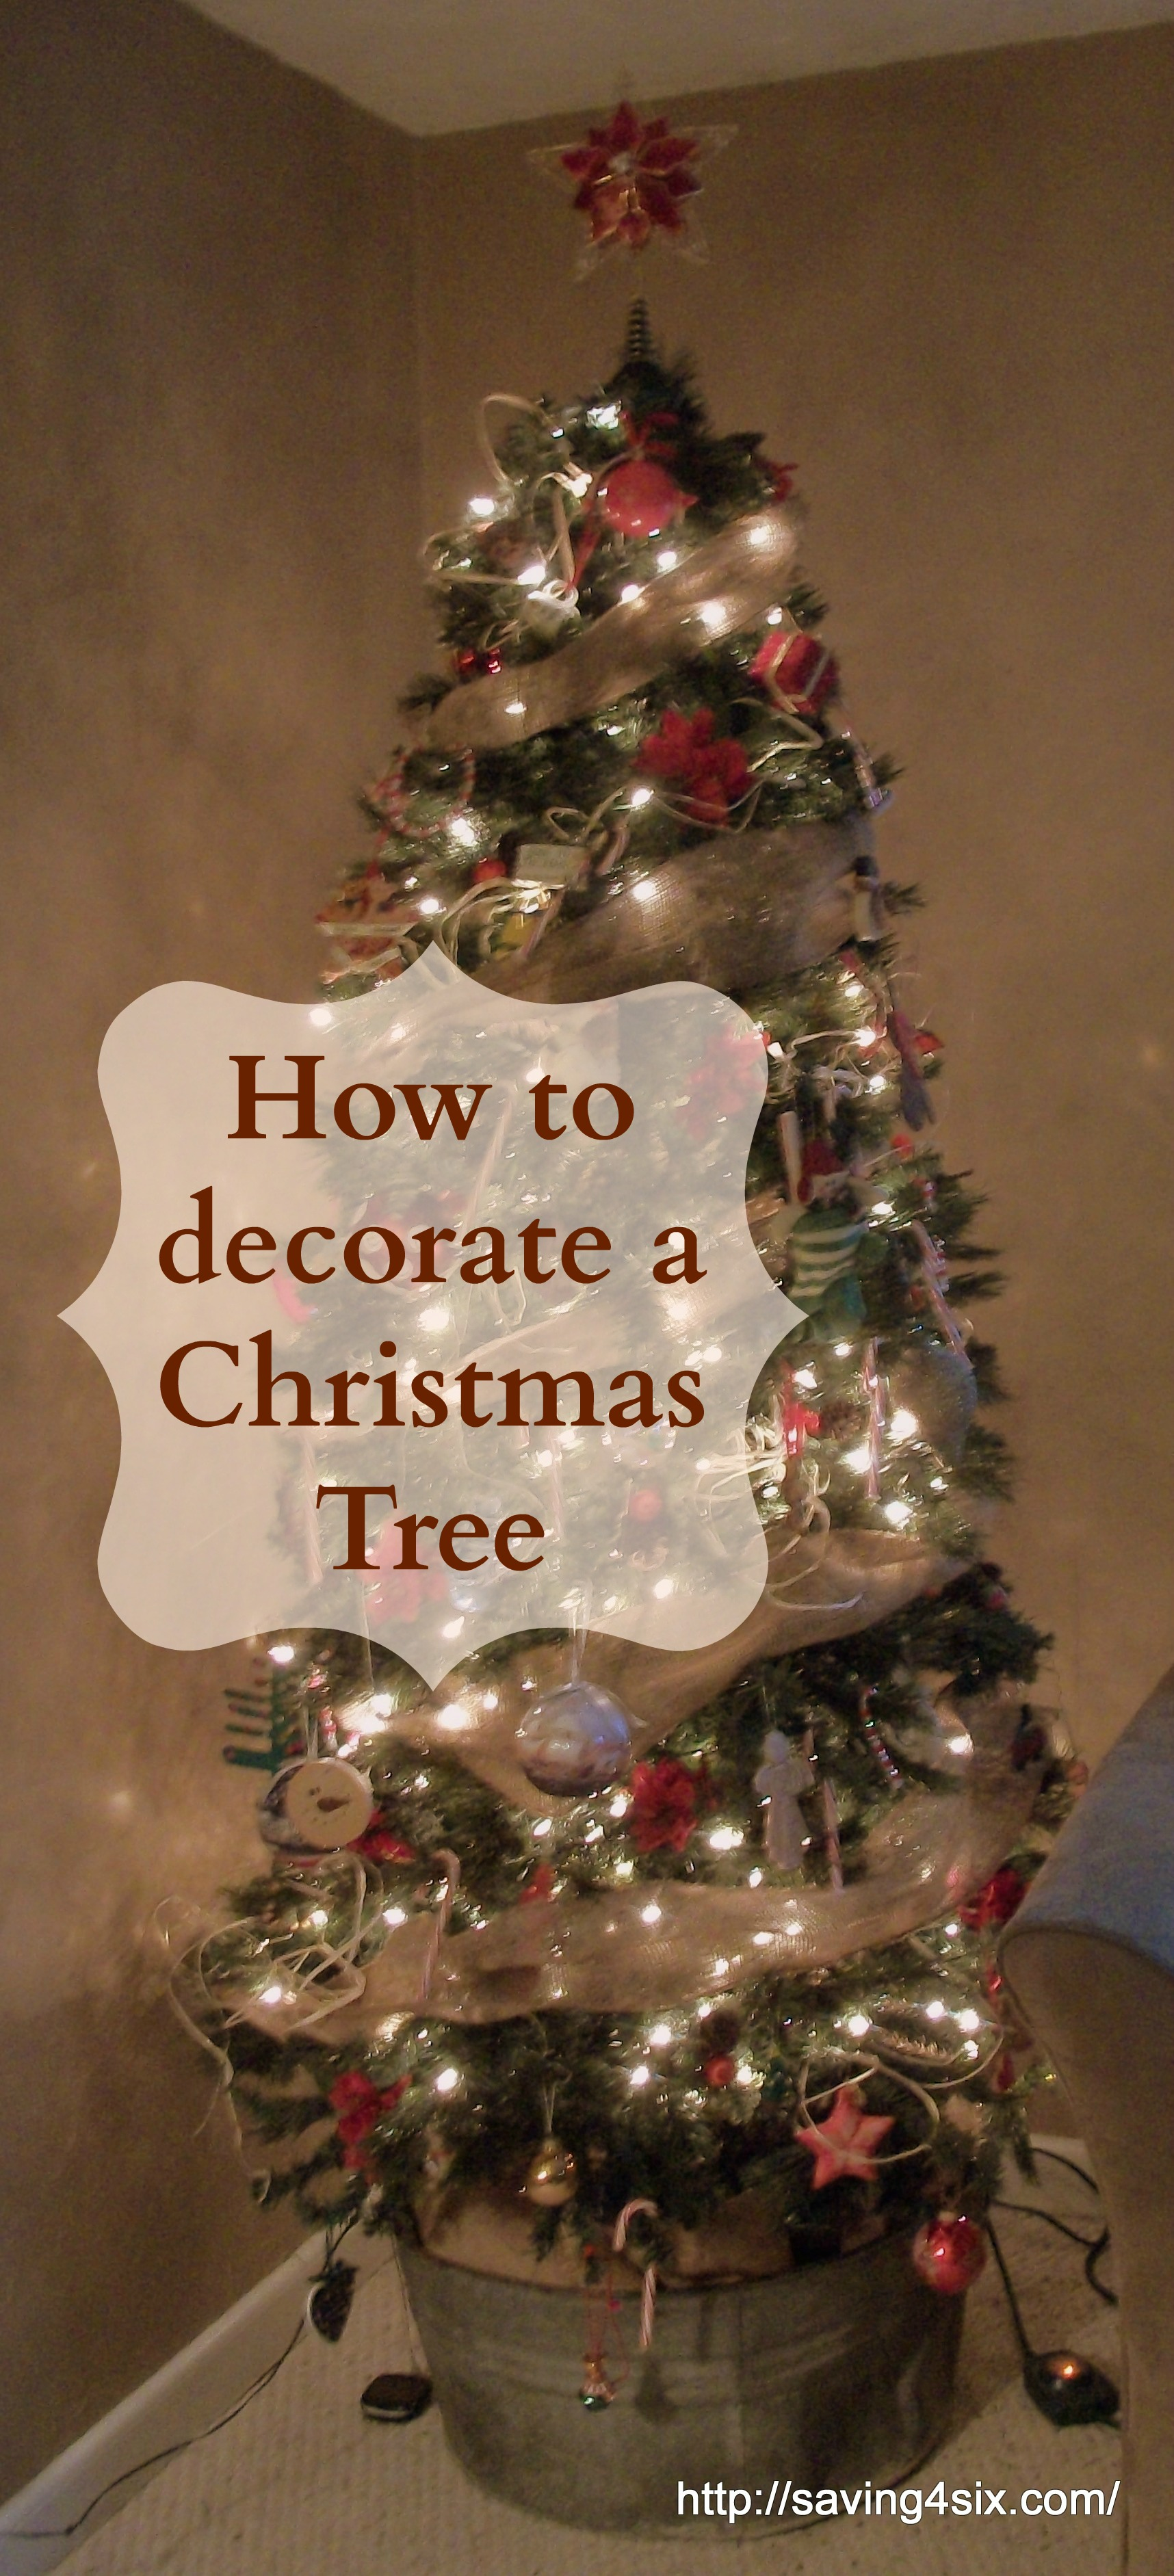 You want your tree to sit cohesively in the space, and pulling colours from your room is an easy way to start. Or, if you're a homeware nerd like I am, you could choose your tree theme first and.